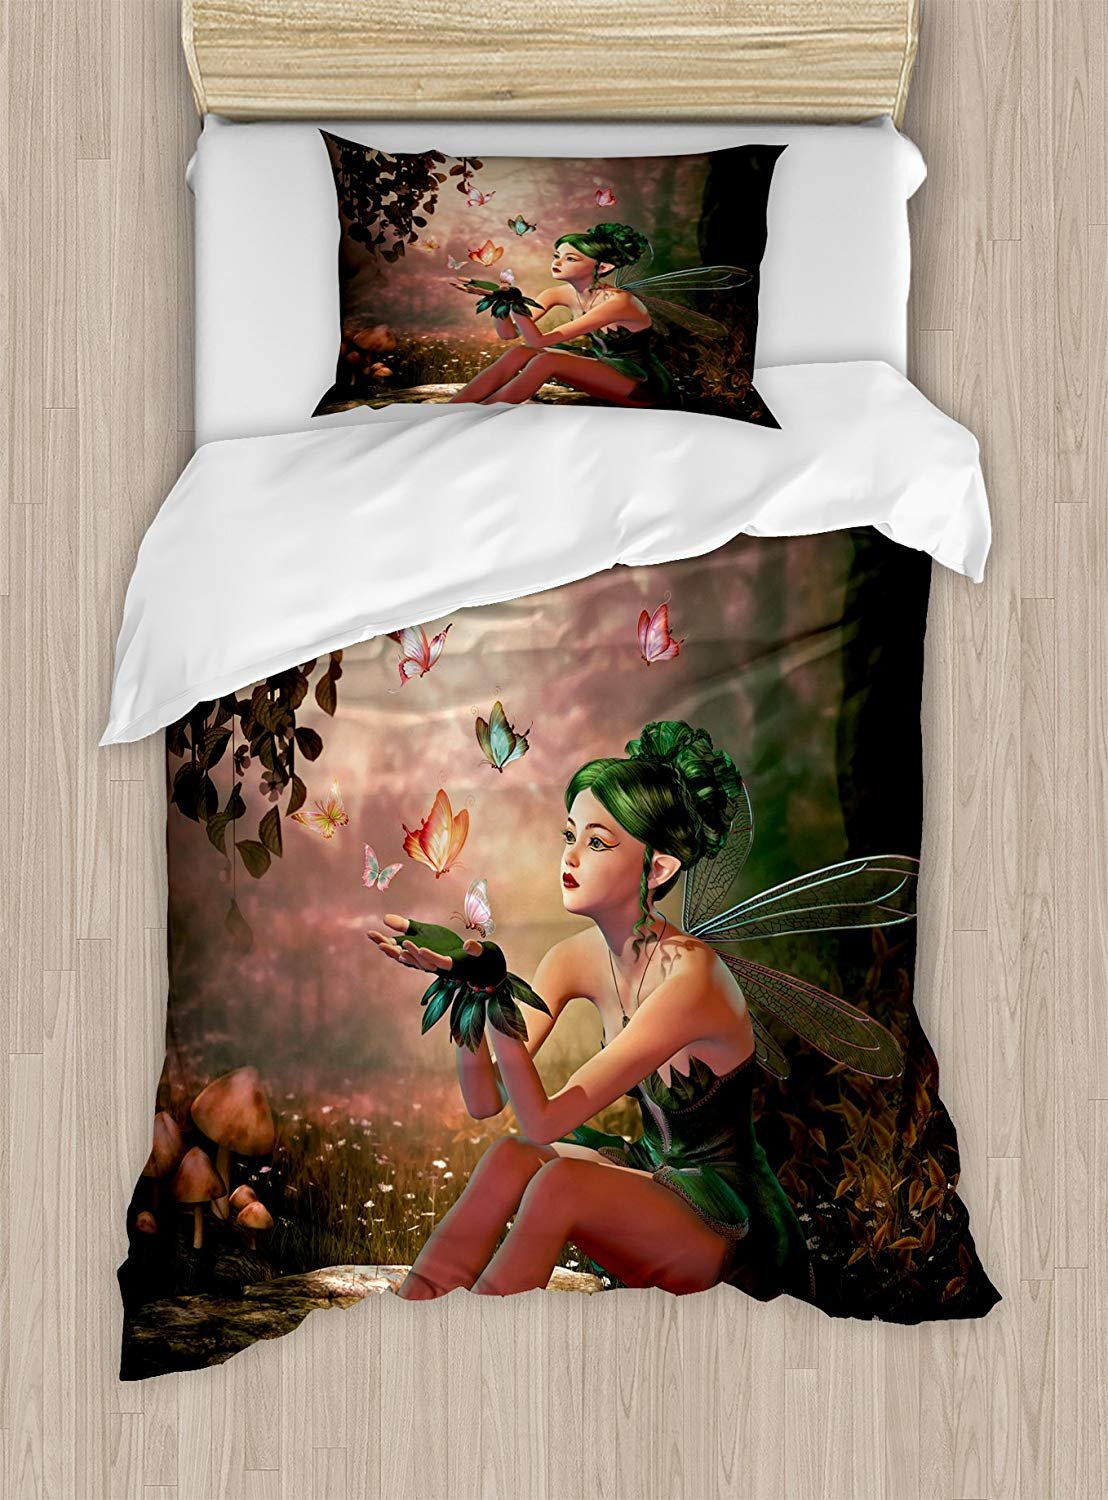 Fairy Duvet Cover Set,Girl with Wings and Butterflies Digital Composition Computer Graphics Elven Creature,Cosy House Collection 4 Piece Bedding Sets